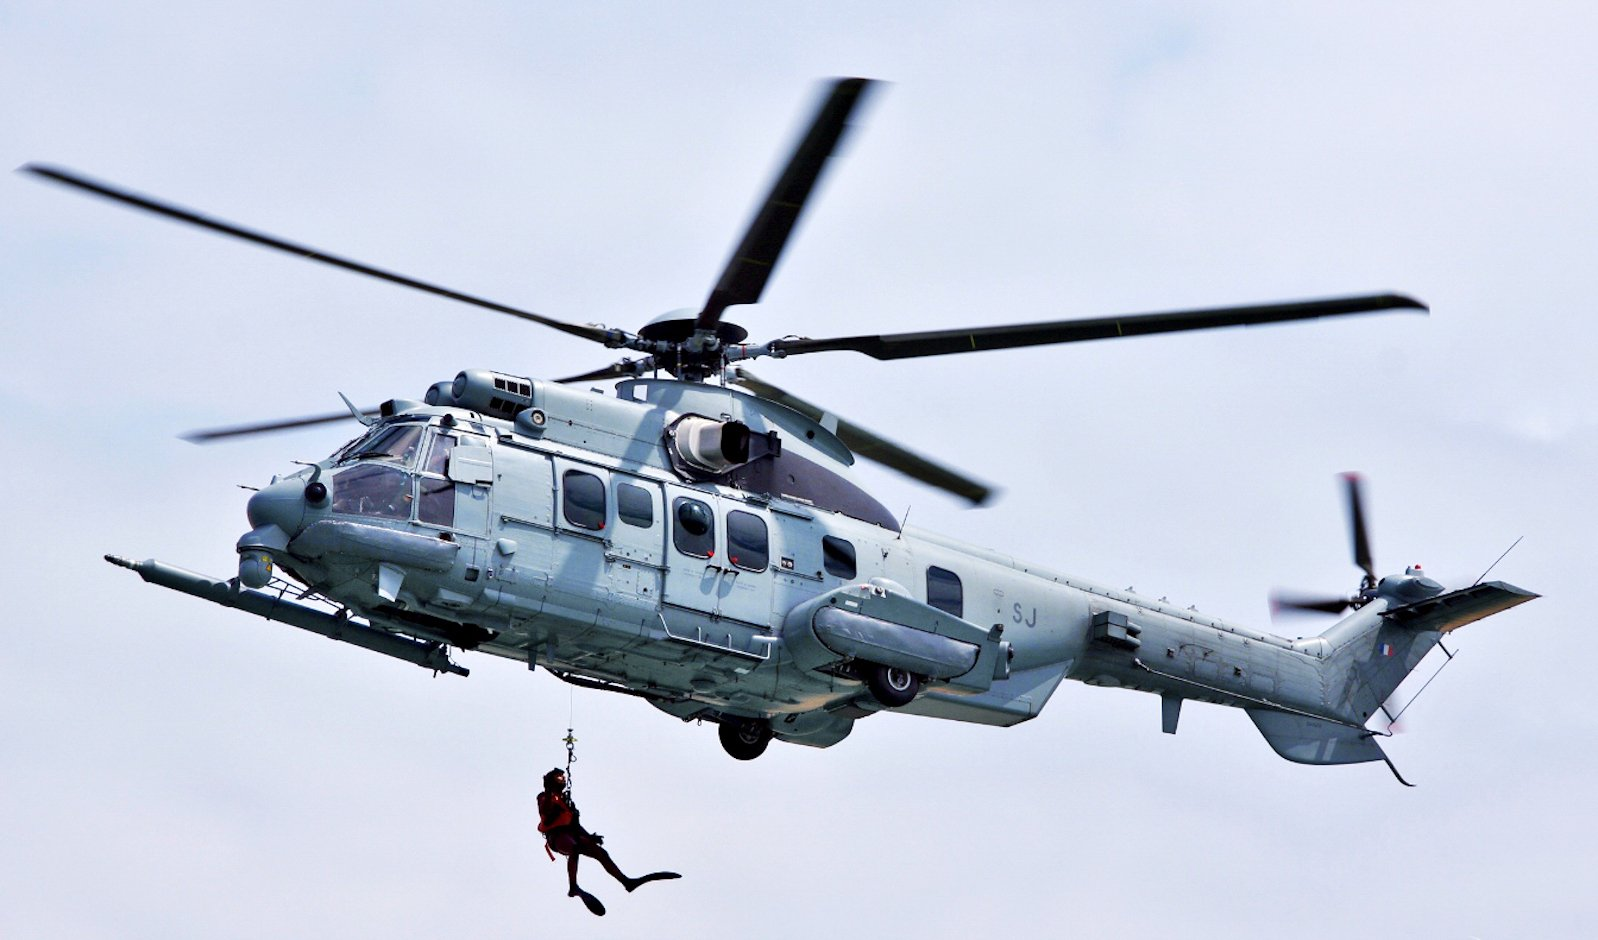 H225M Caracal [French Air and Space Force]